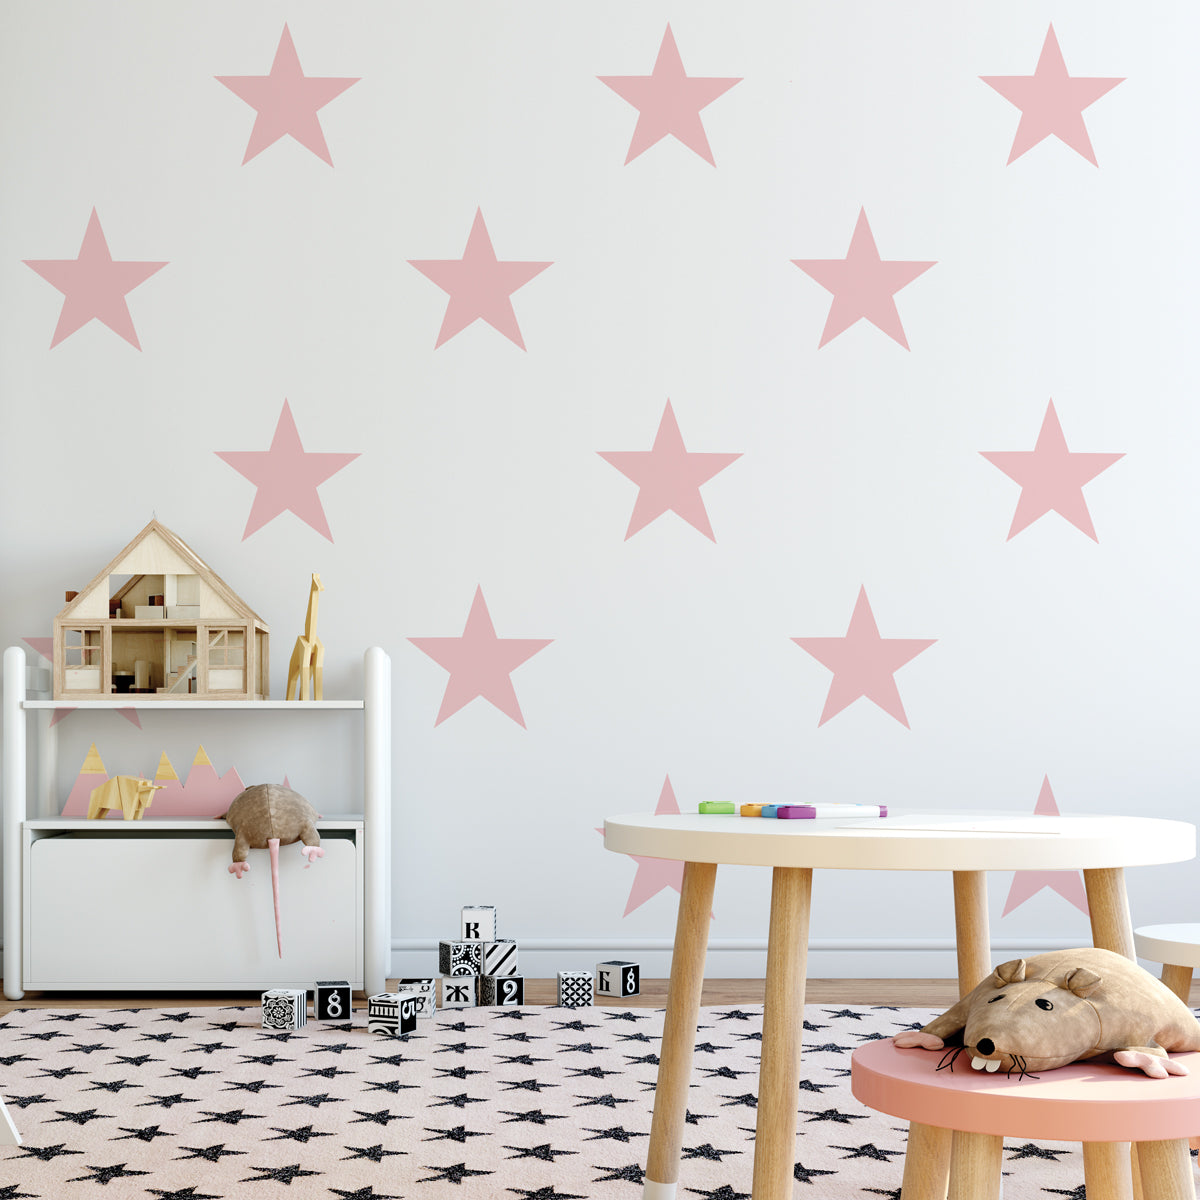 858bda3449b7e 12 Large Star Wall Decals, 9 inch, Millennial Pink, Navy Black or White  Removable Fabric Wall Stickers